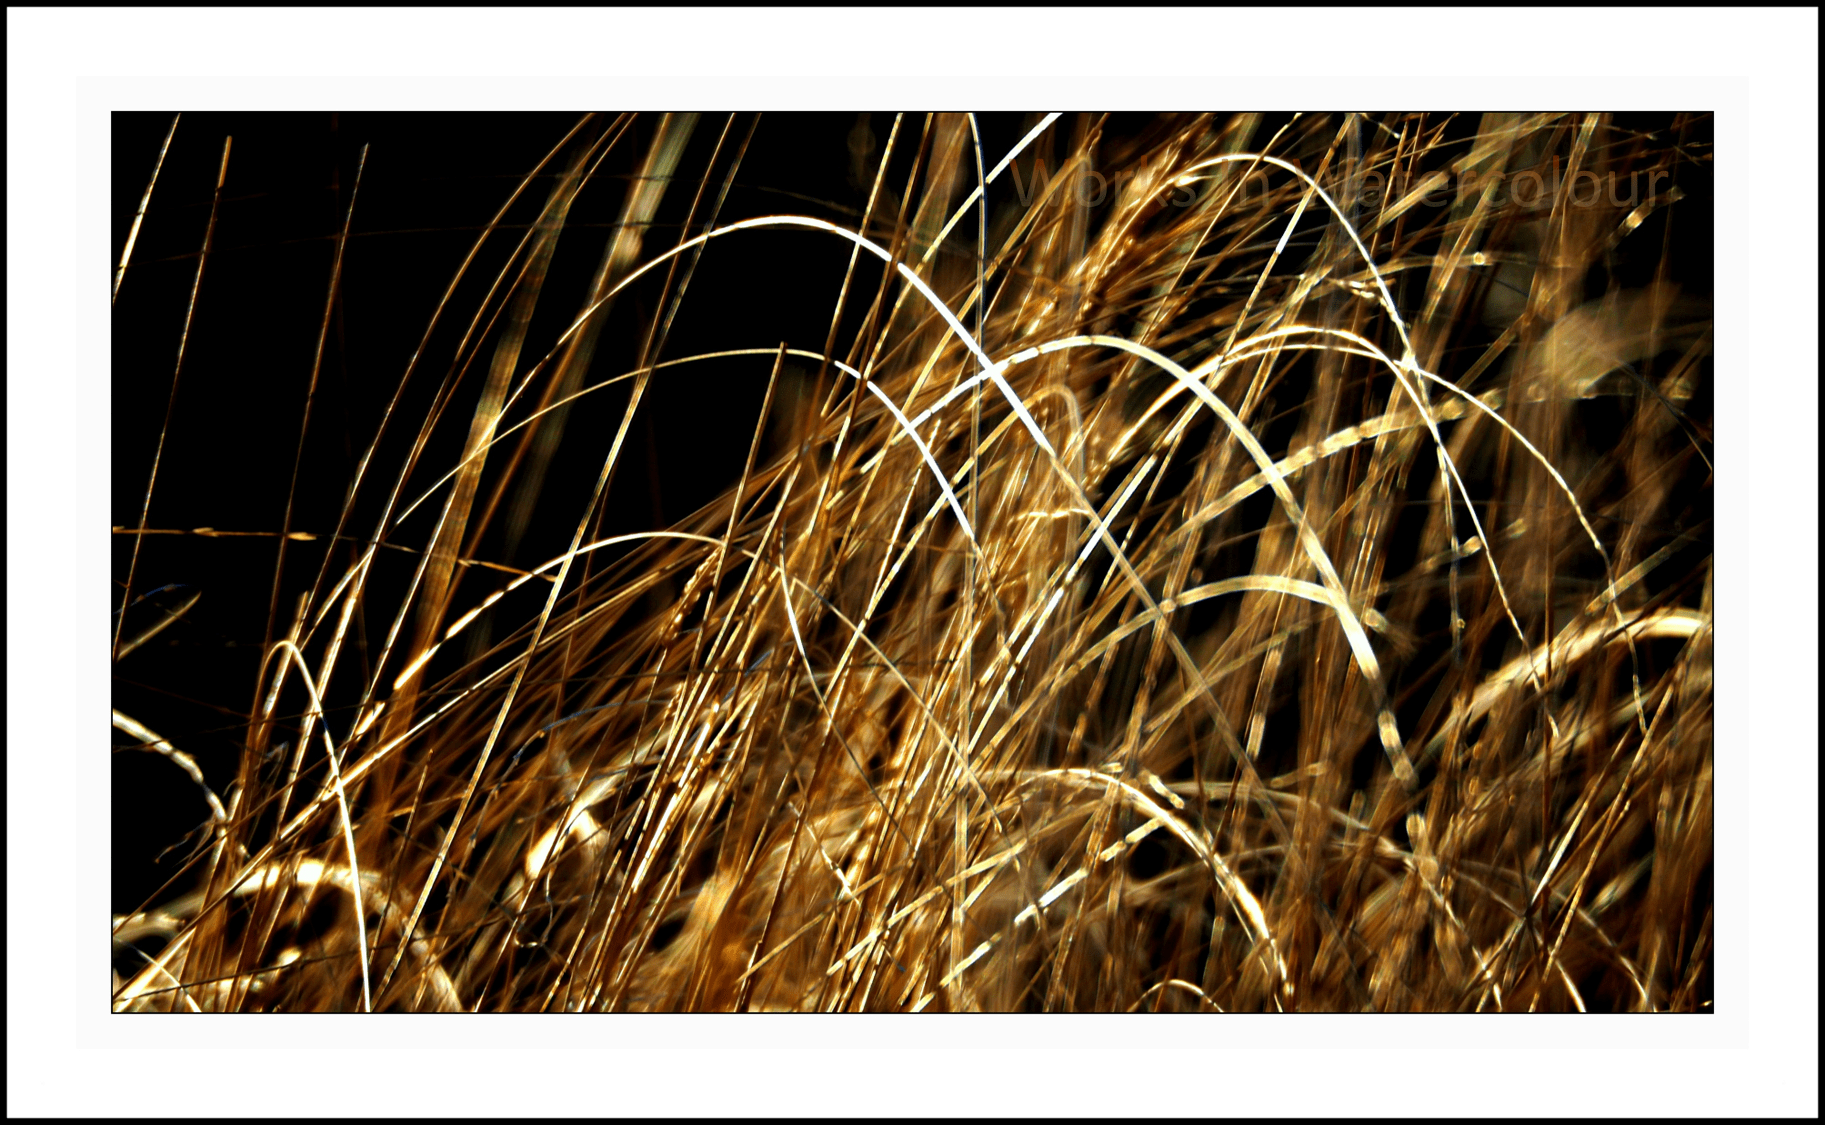 Golden Grass (c) WIW - Russell Perry